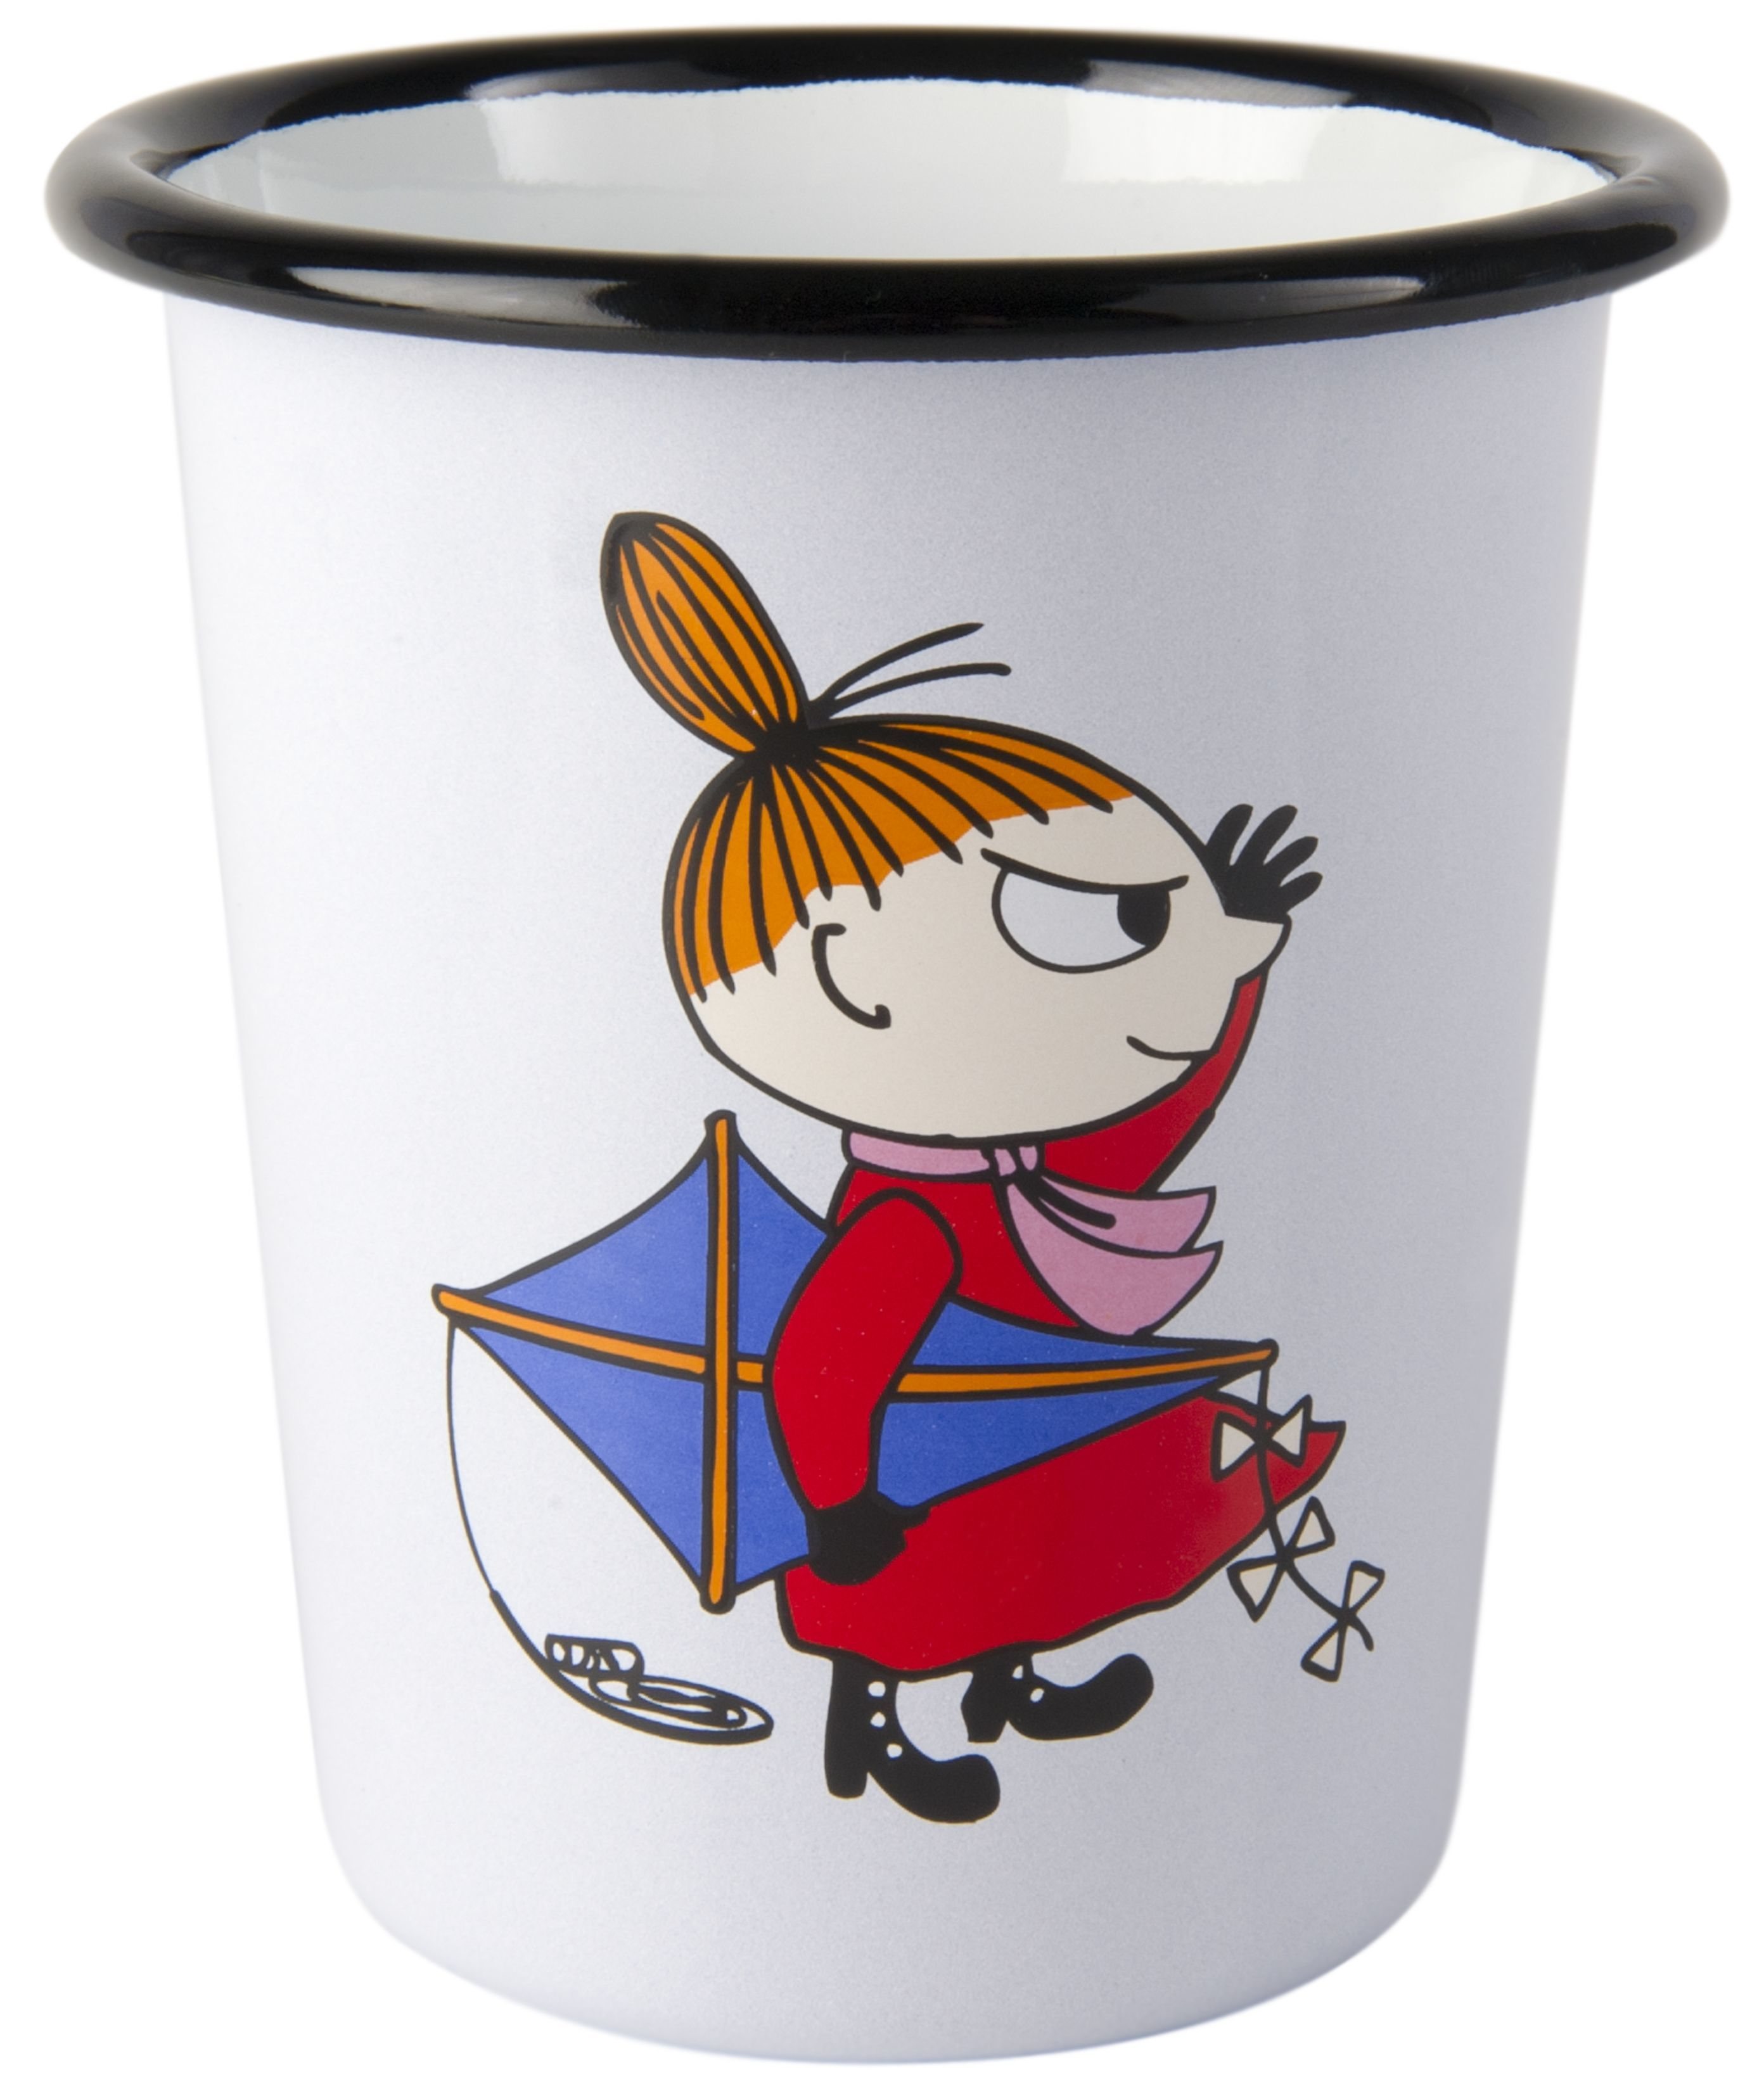 Muurla enamel tumbler 4dl Retro Little My